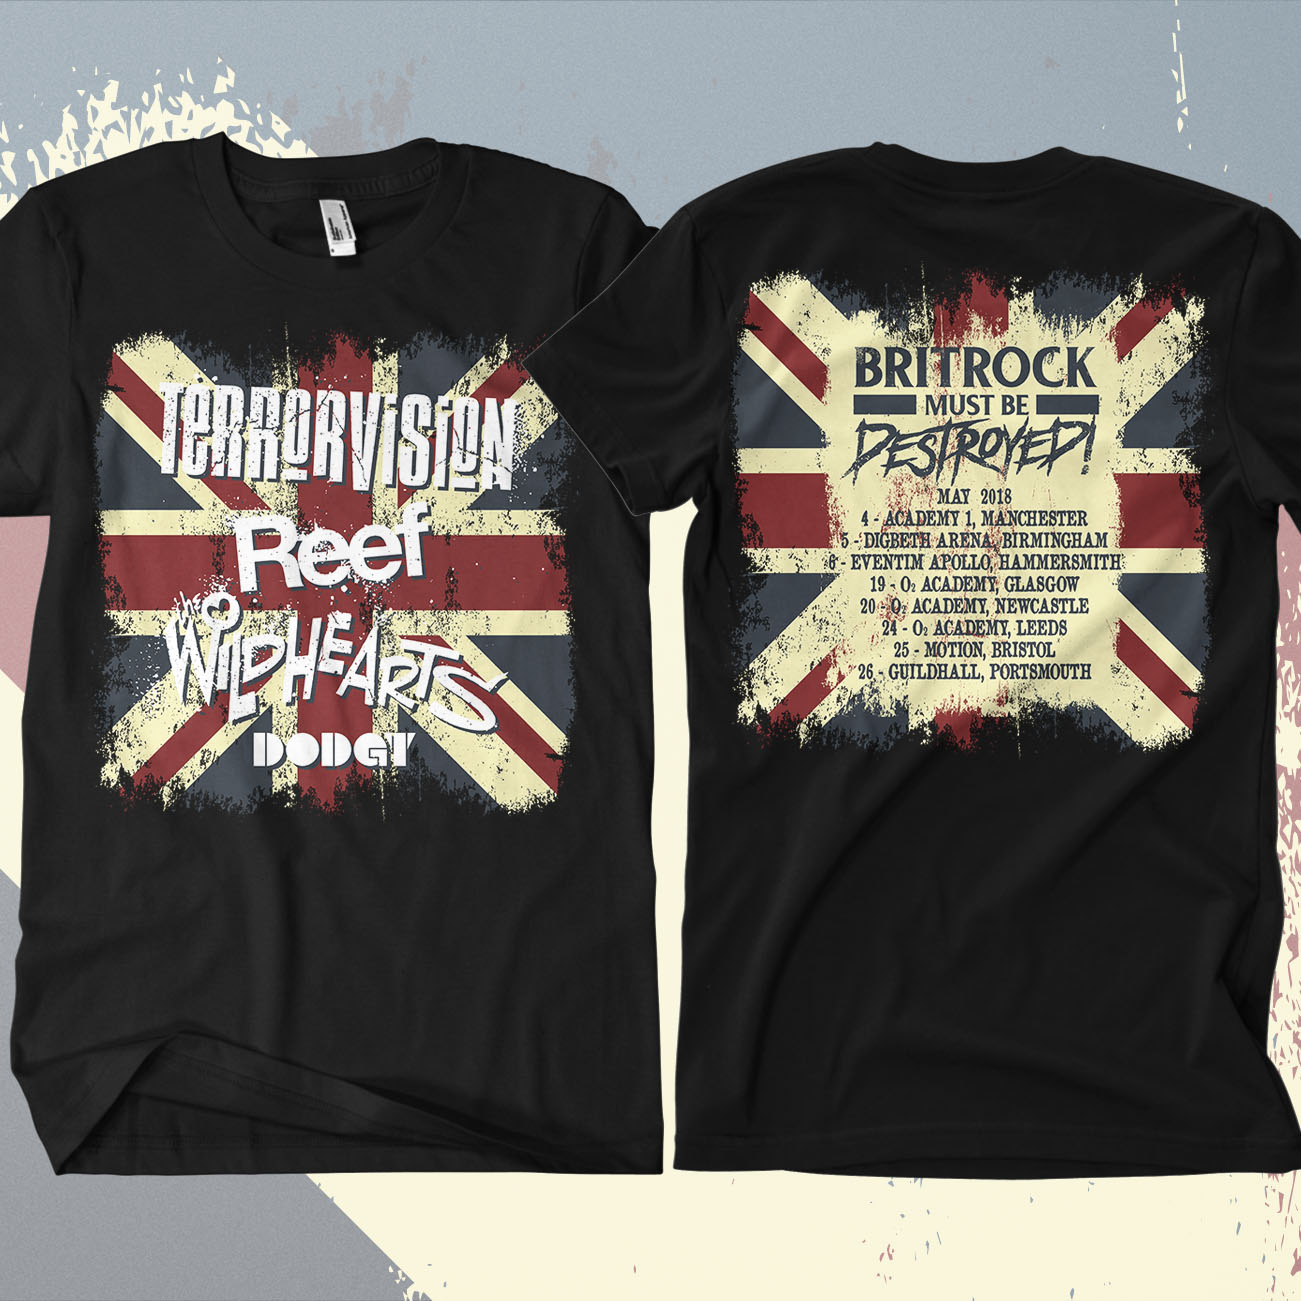 Terrorvision - 'Britrock Must Be Destroyed' Black UK Tour T-Shirt - Omerch